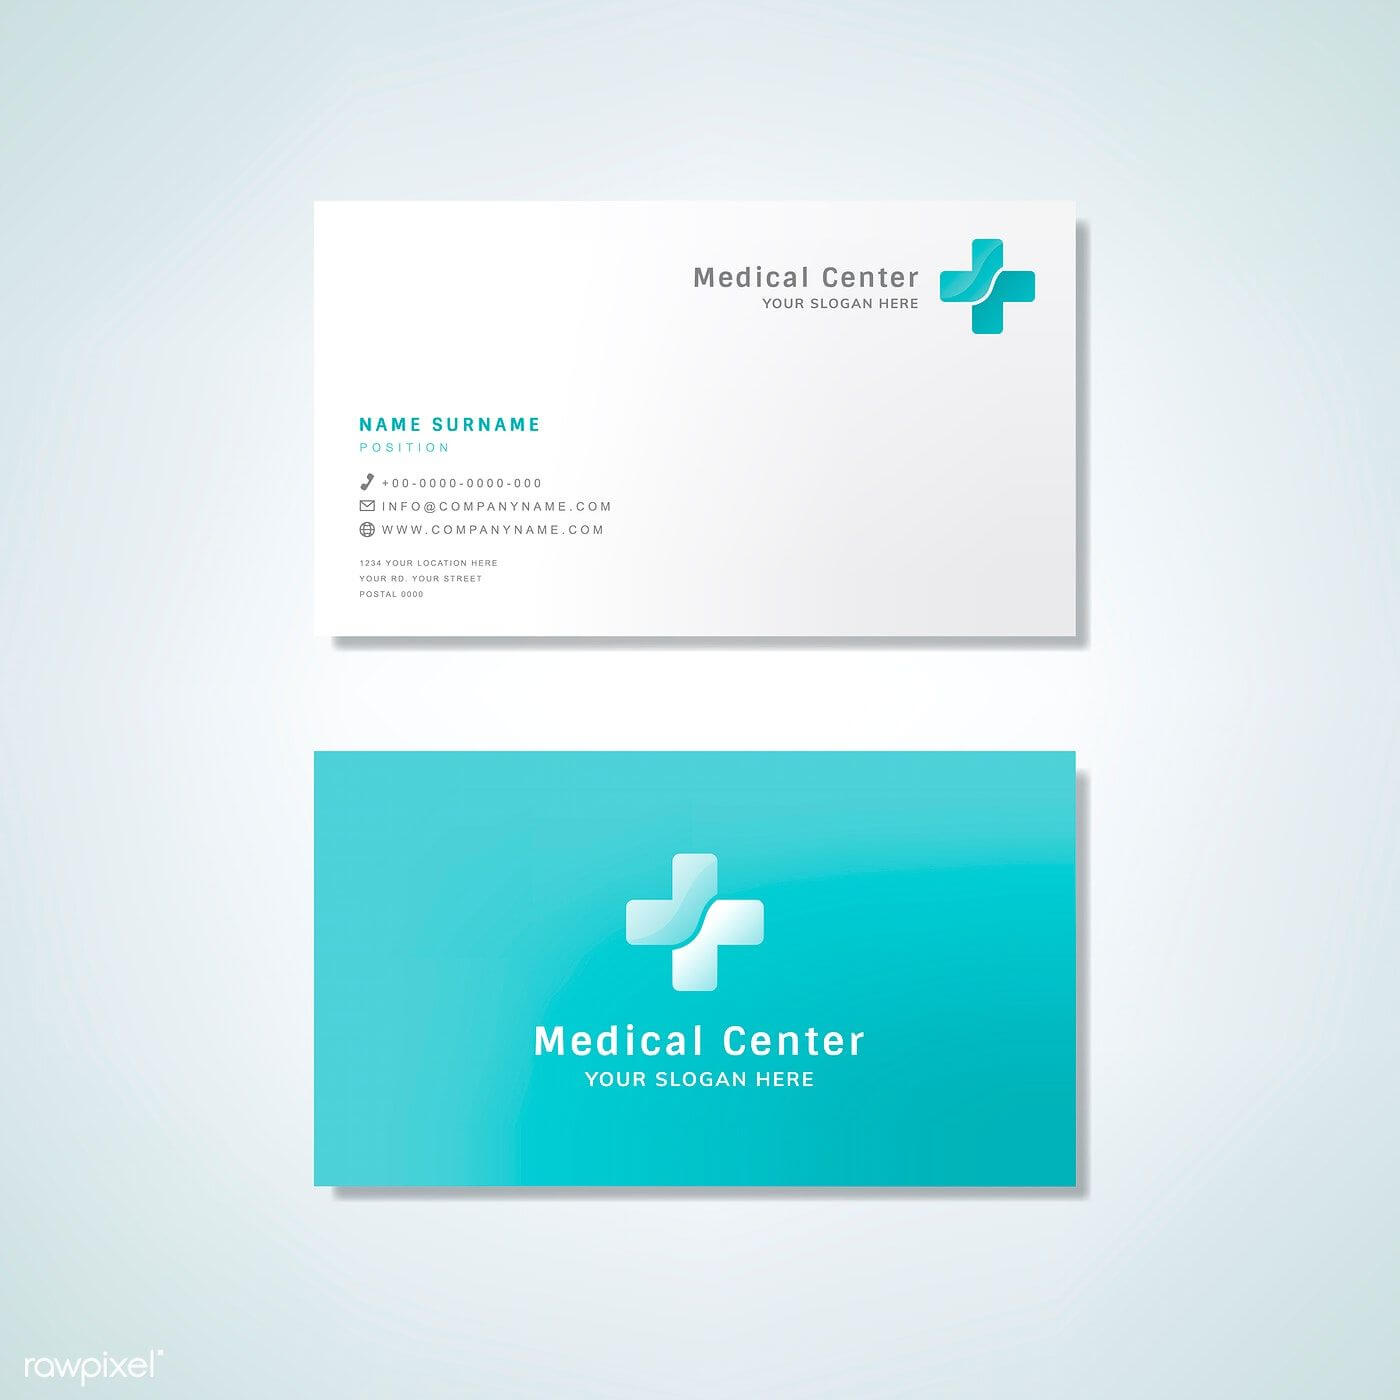 Medical Professional Business Card Design Mockup | Free With Regard To Medical Business Cards Templates Free